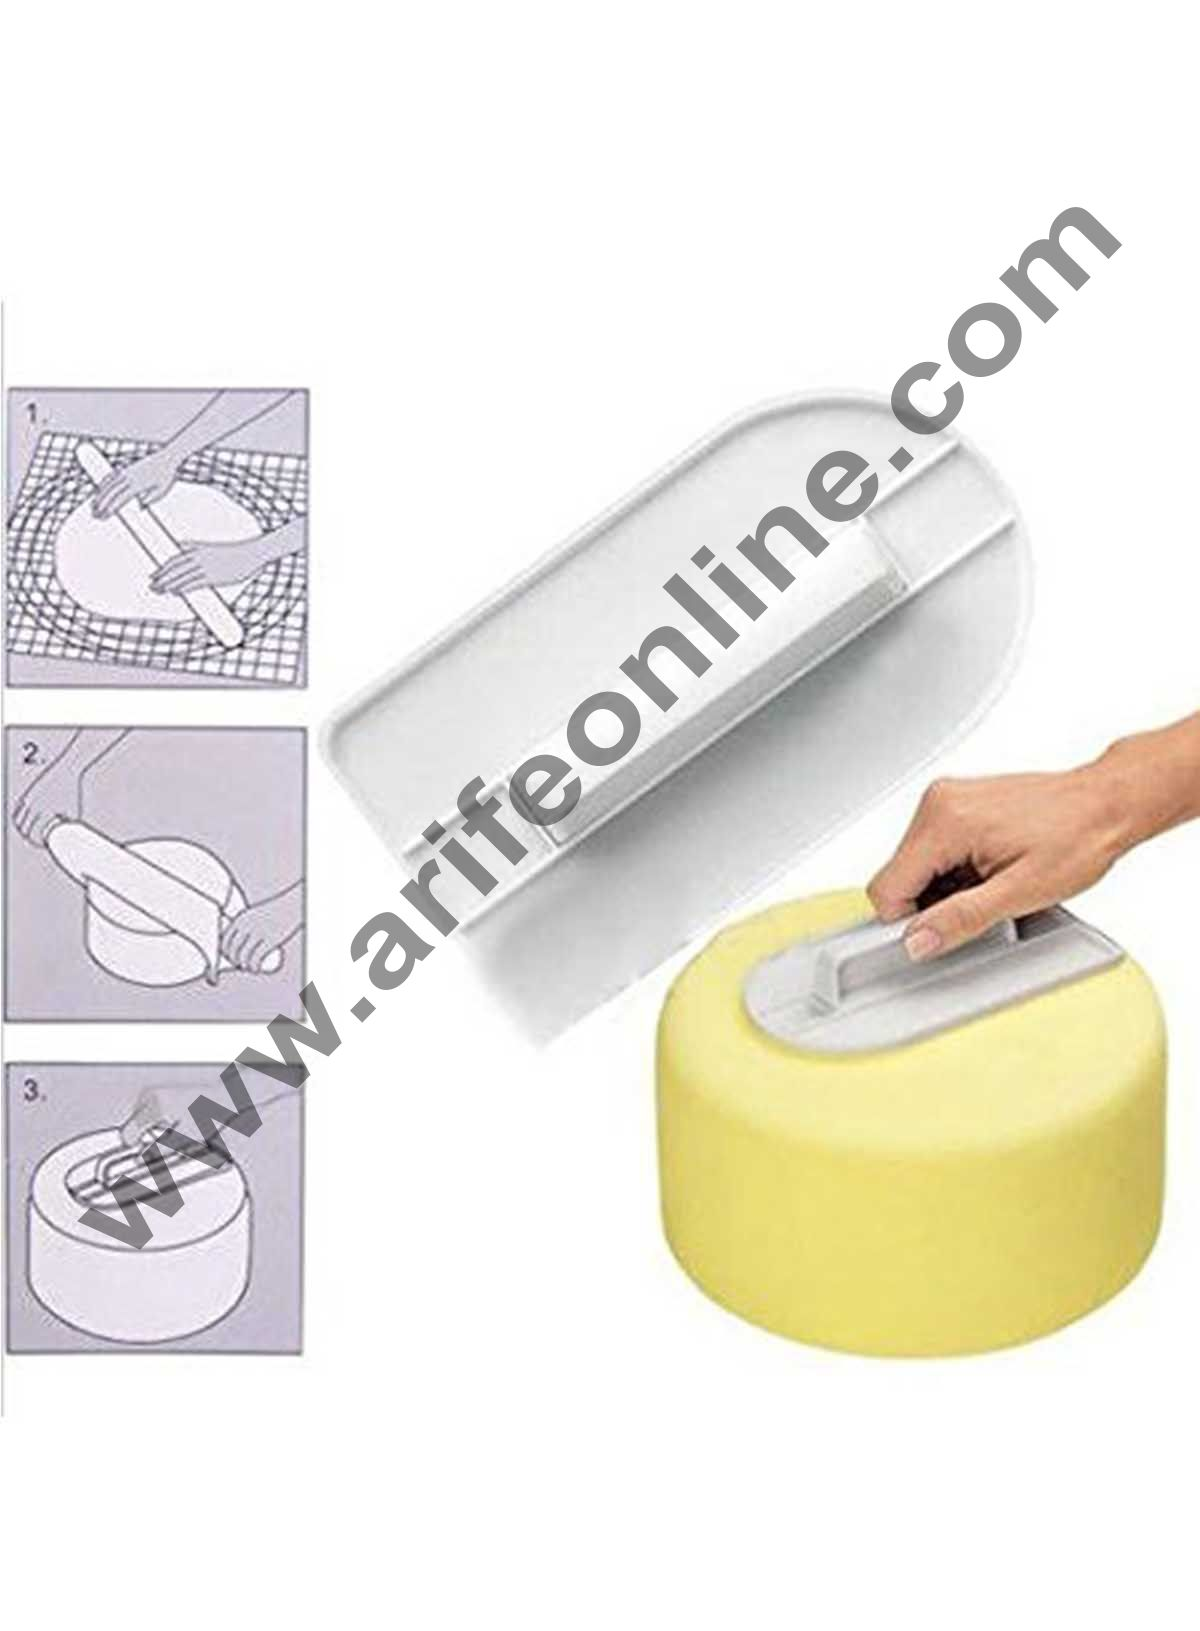 Cake Decor Easy Glide Cake Fondant Smoother